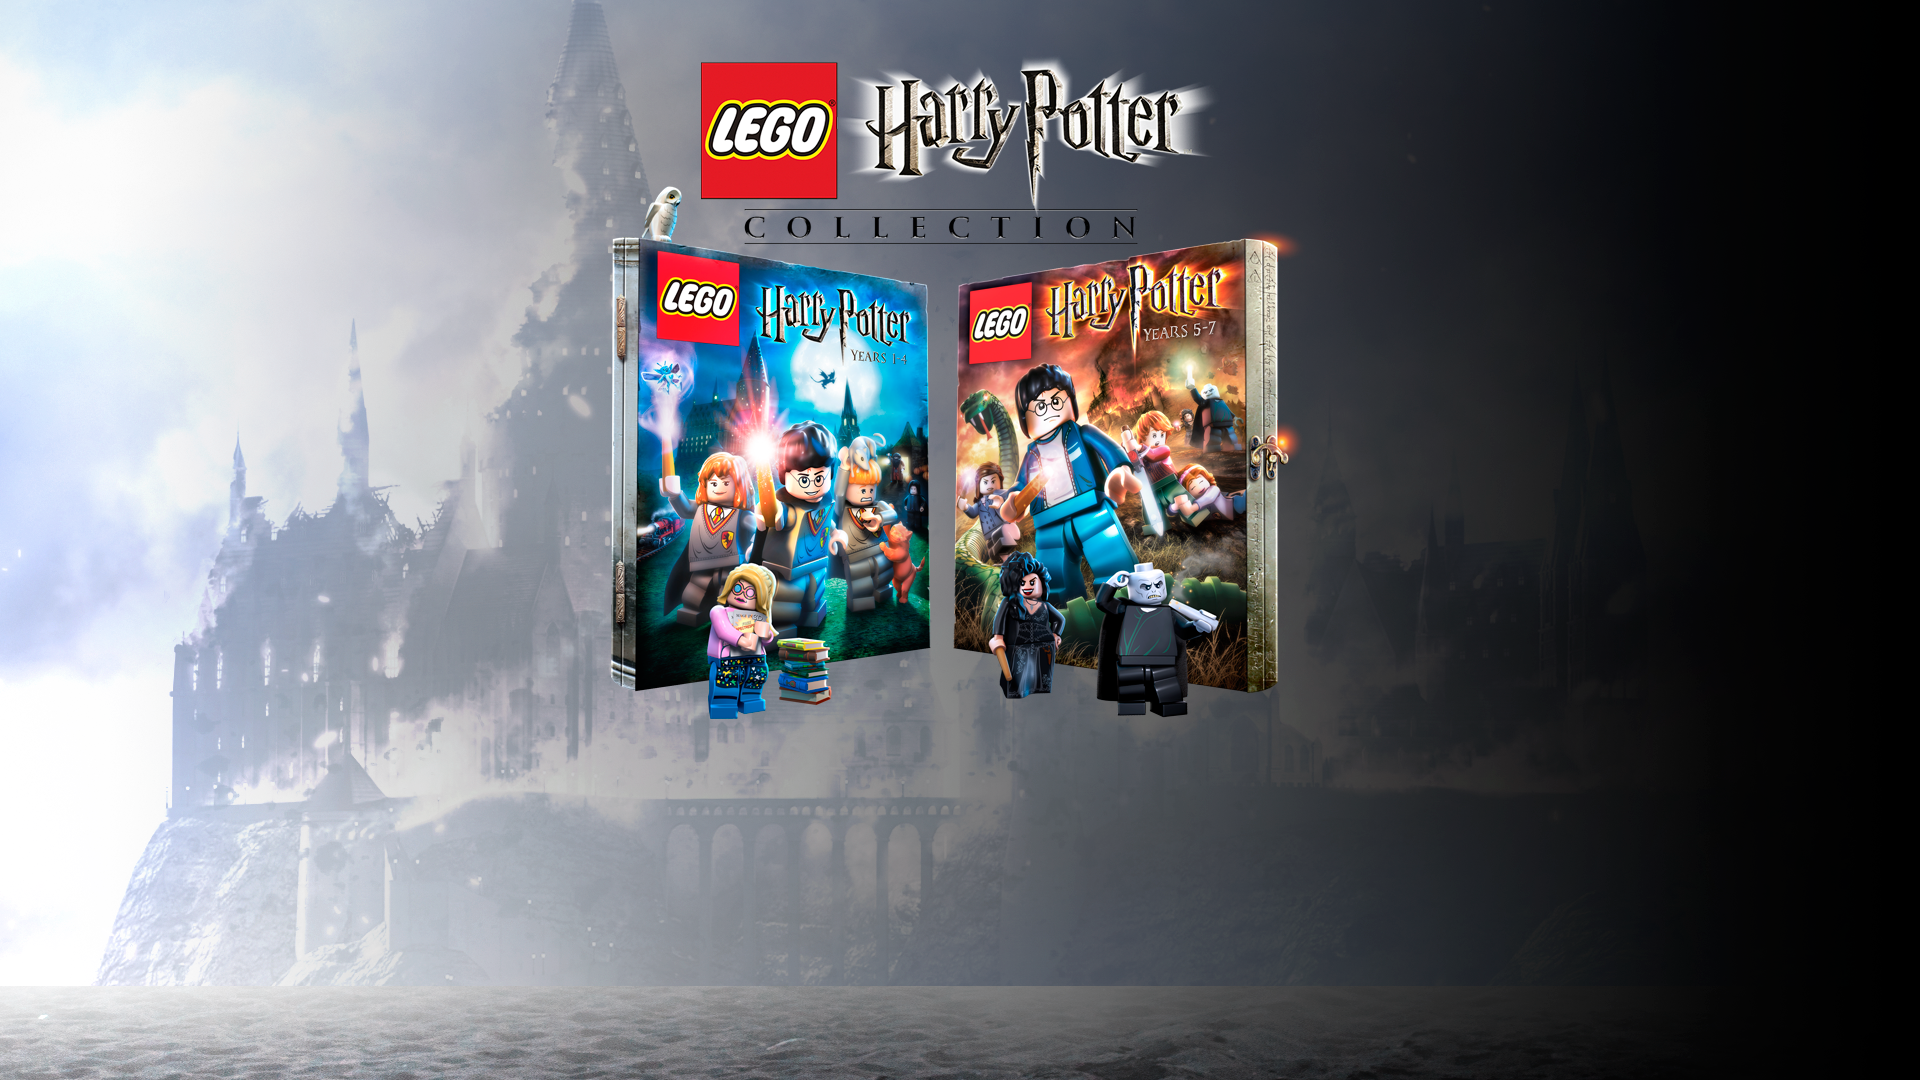 ps4 download lego potter harry